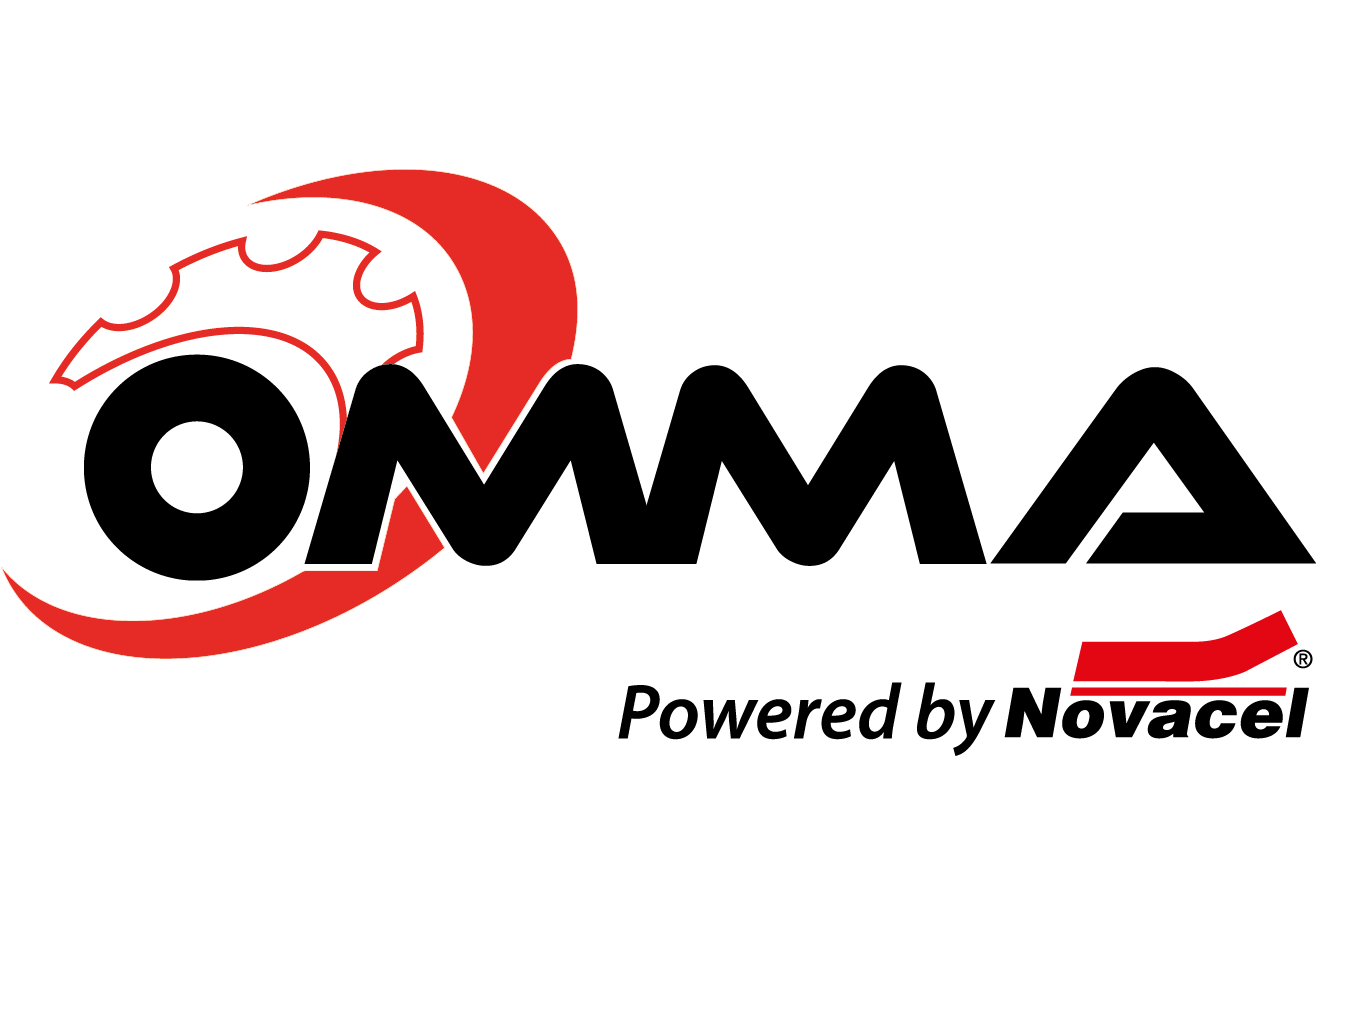 Omma powered by Novacel